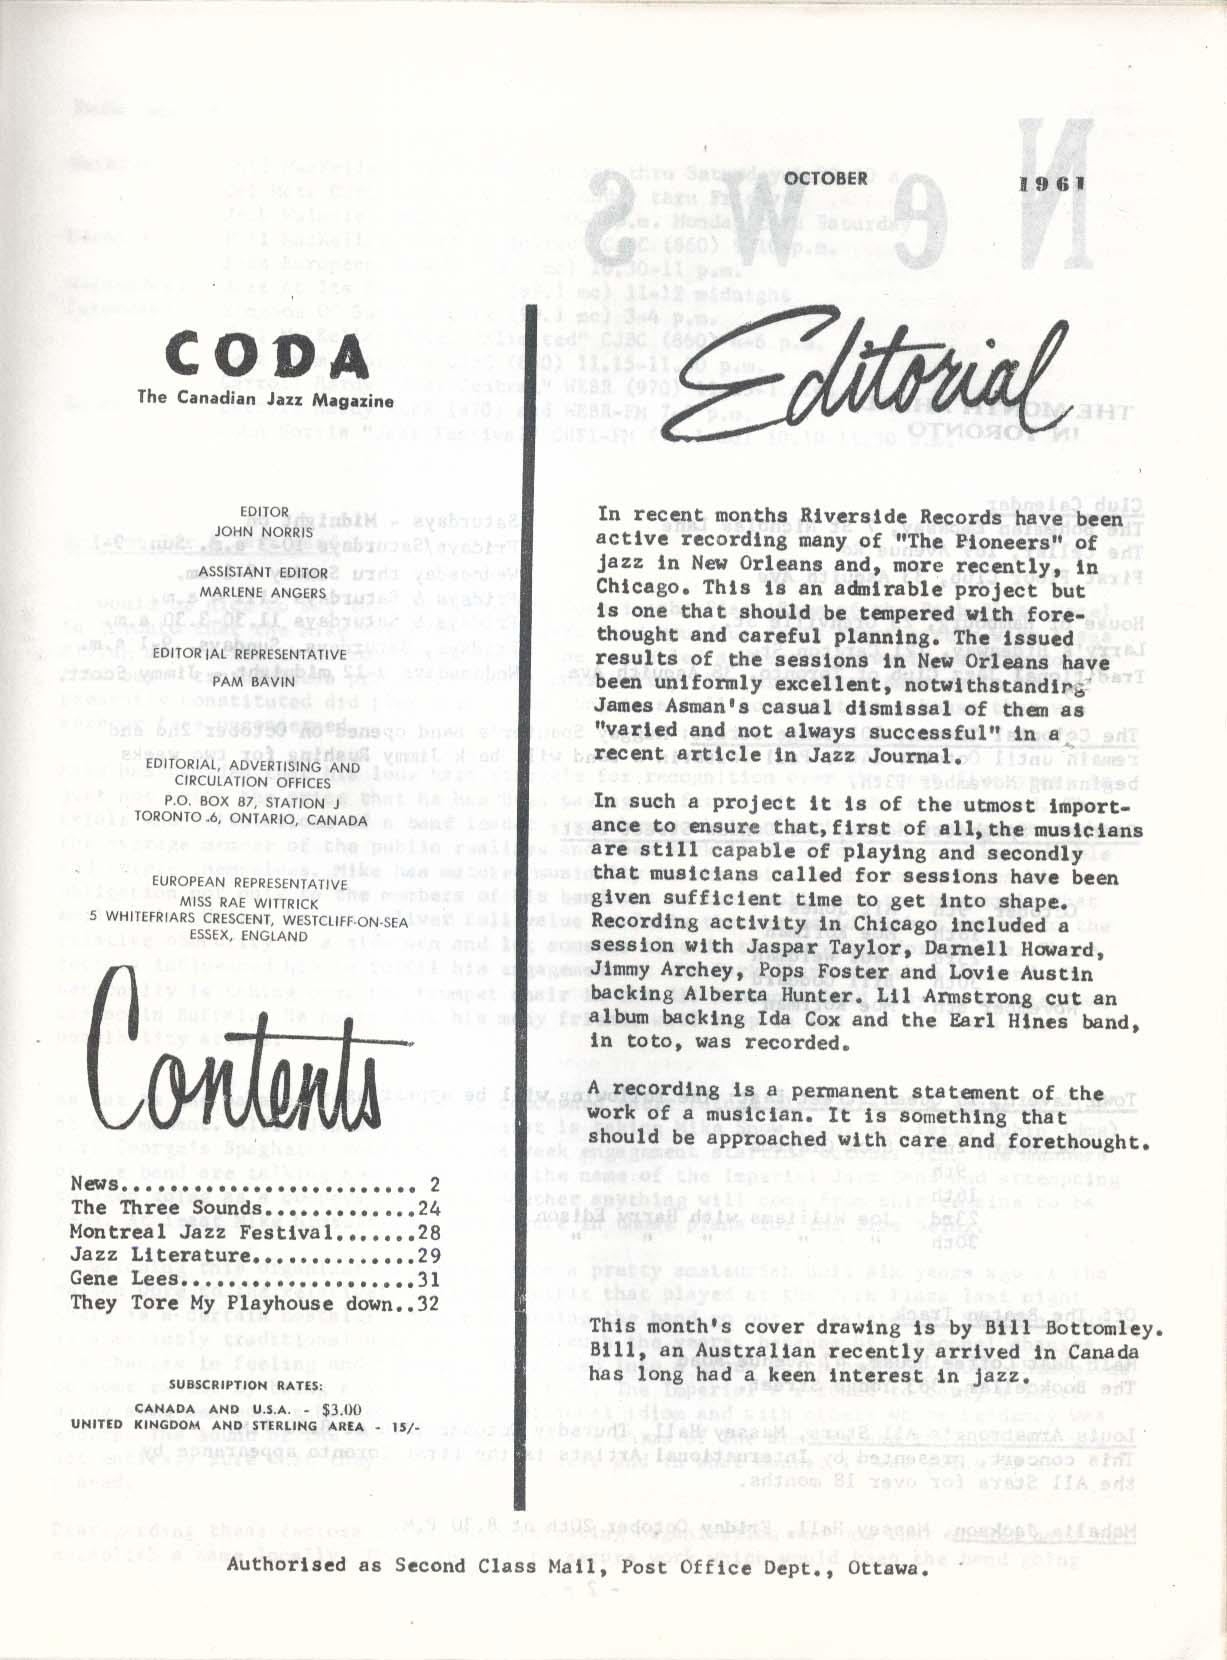 CODA V4 #6 Canadian Jazz Three Sounds Montreal Festival Gene Lees 10 1961